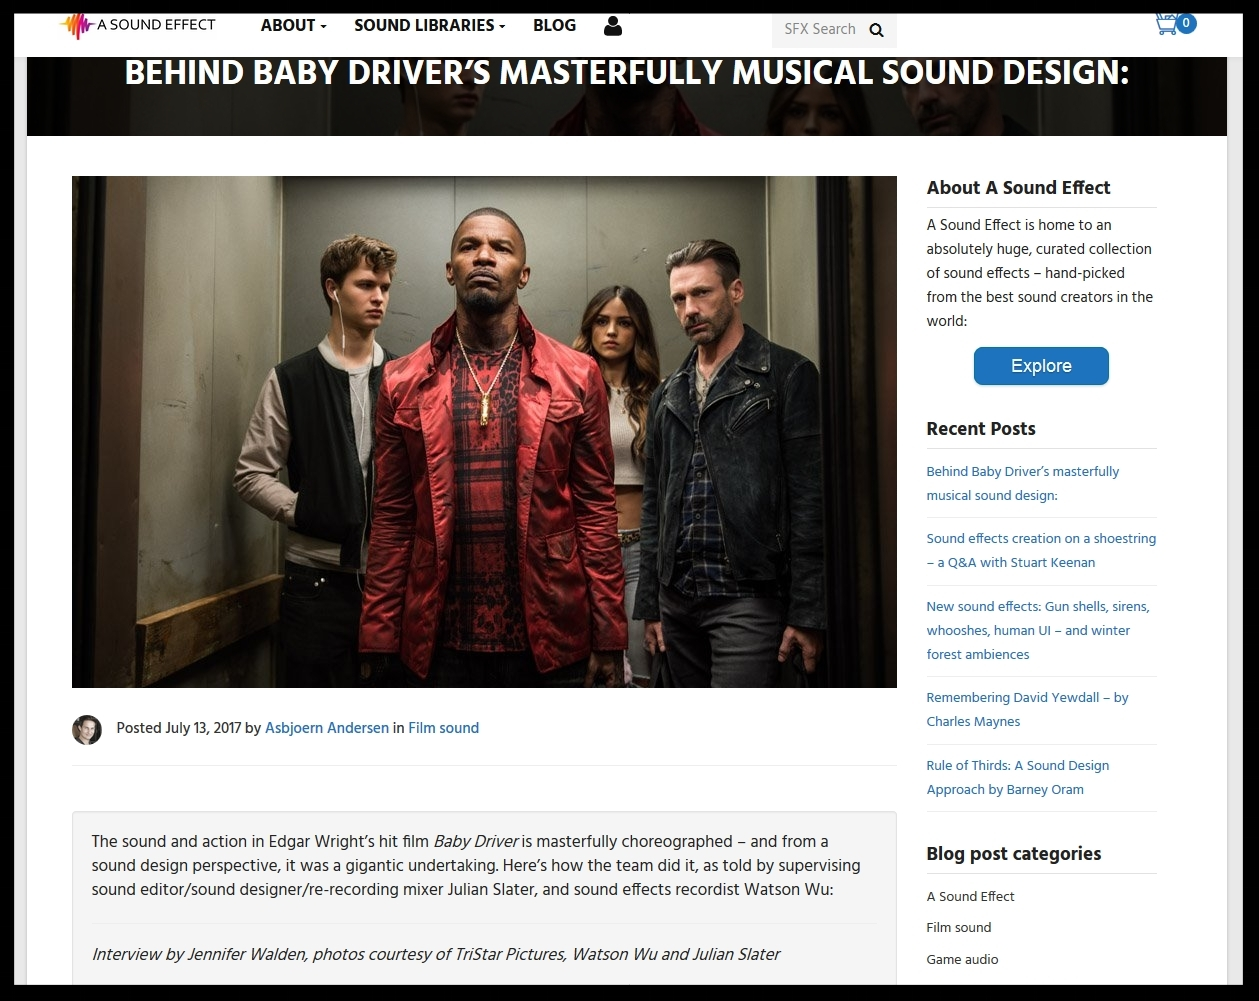 Our featured audio work in Baby Driver, a film by Edgar Wright